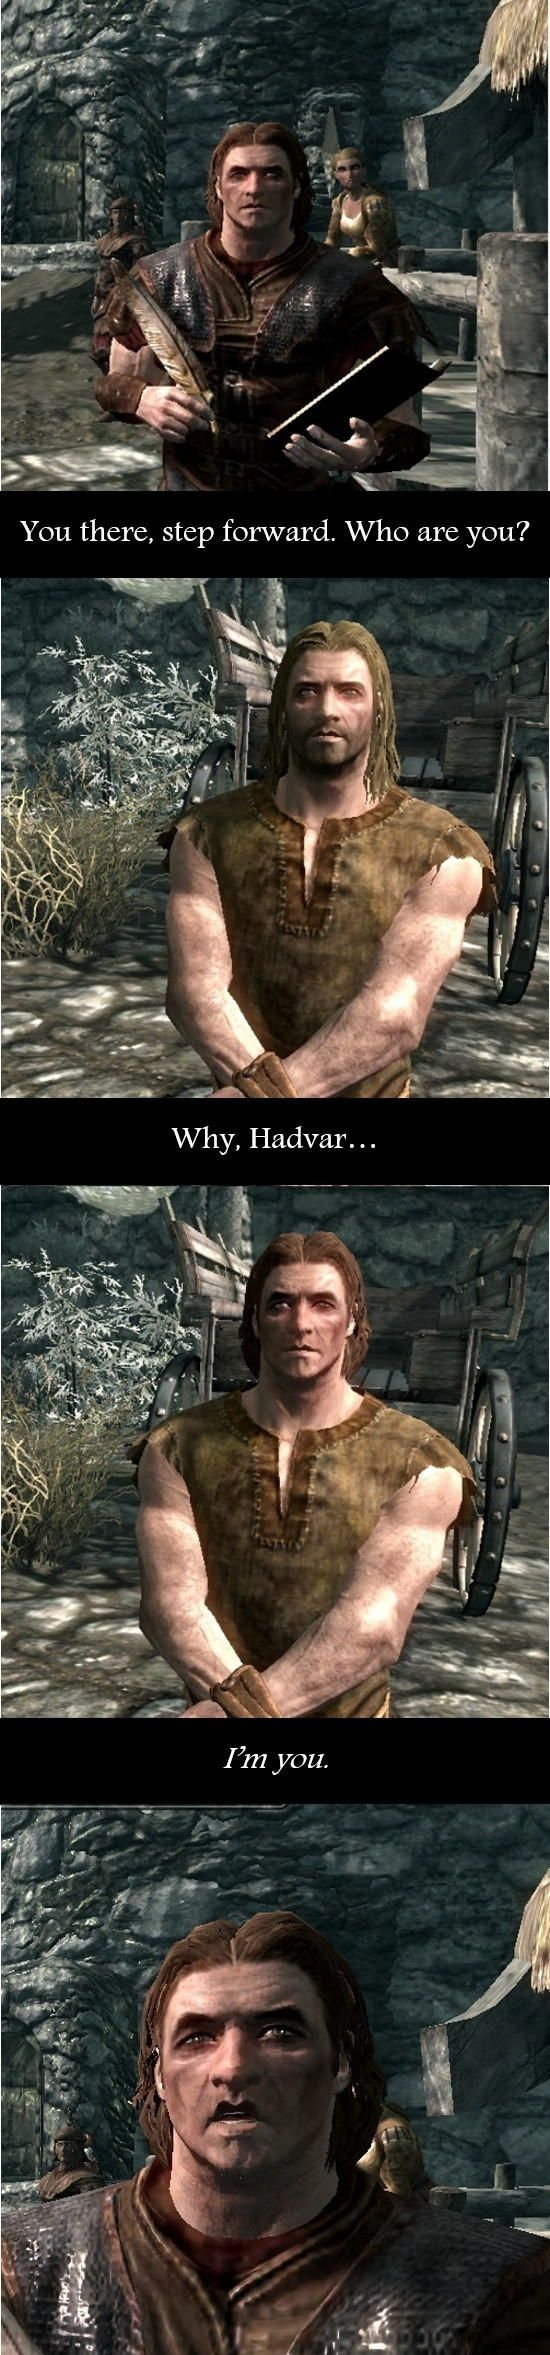 This is worse than when Hadvar saw that one prisoner that started changing his face and race and even gender! That's the day he started drinking.